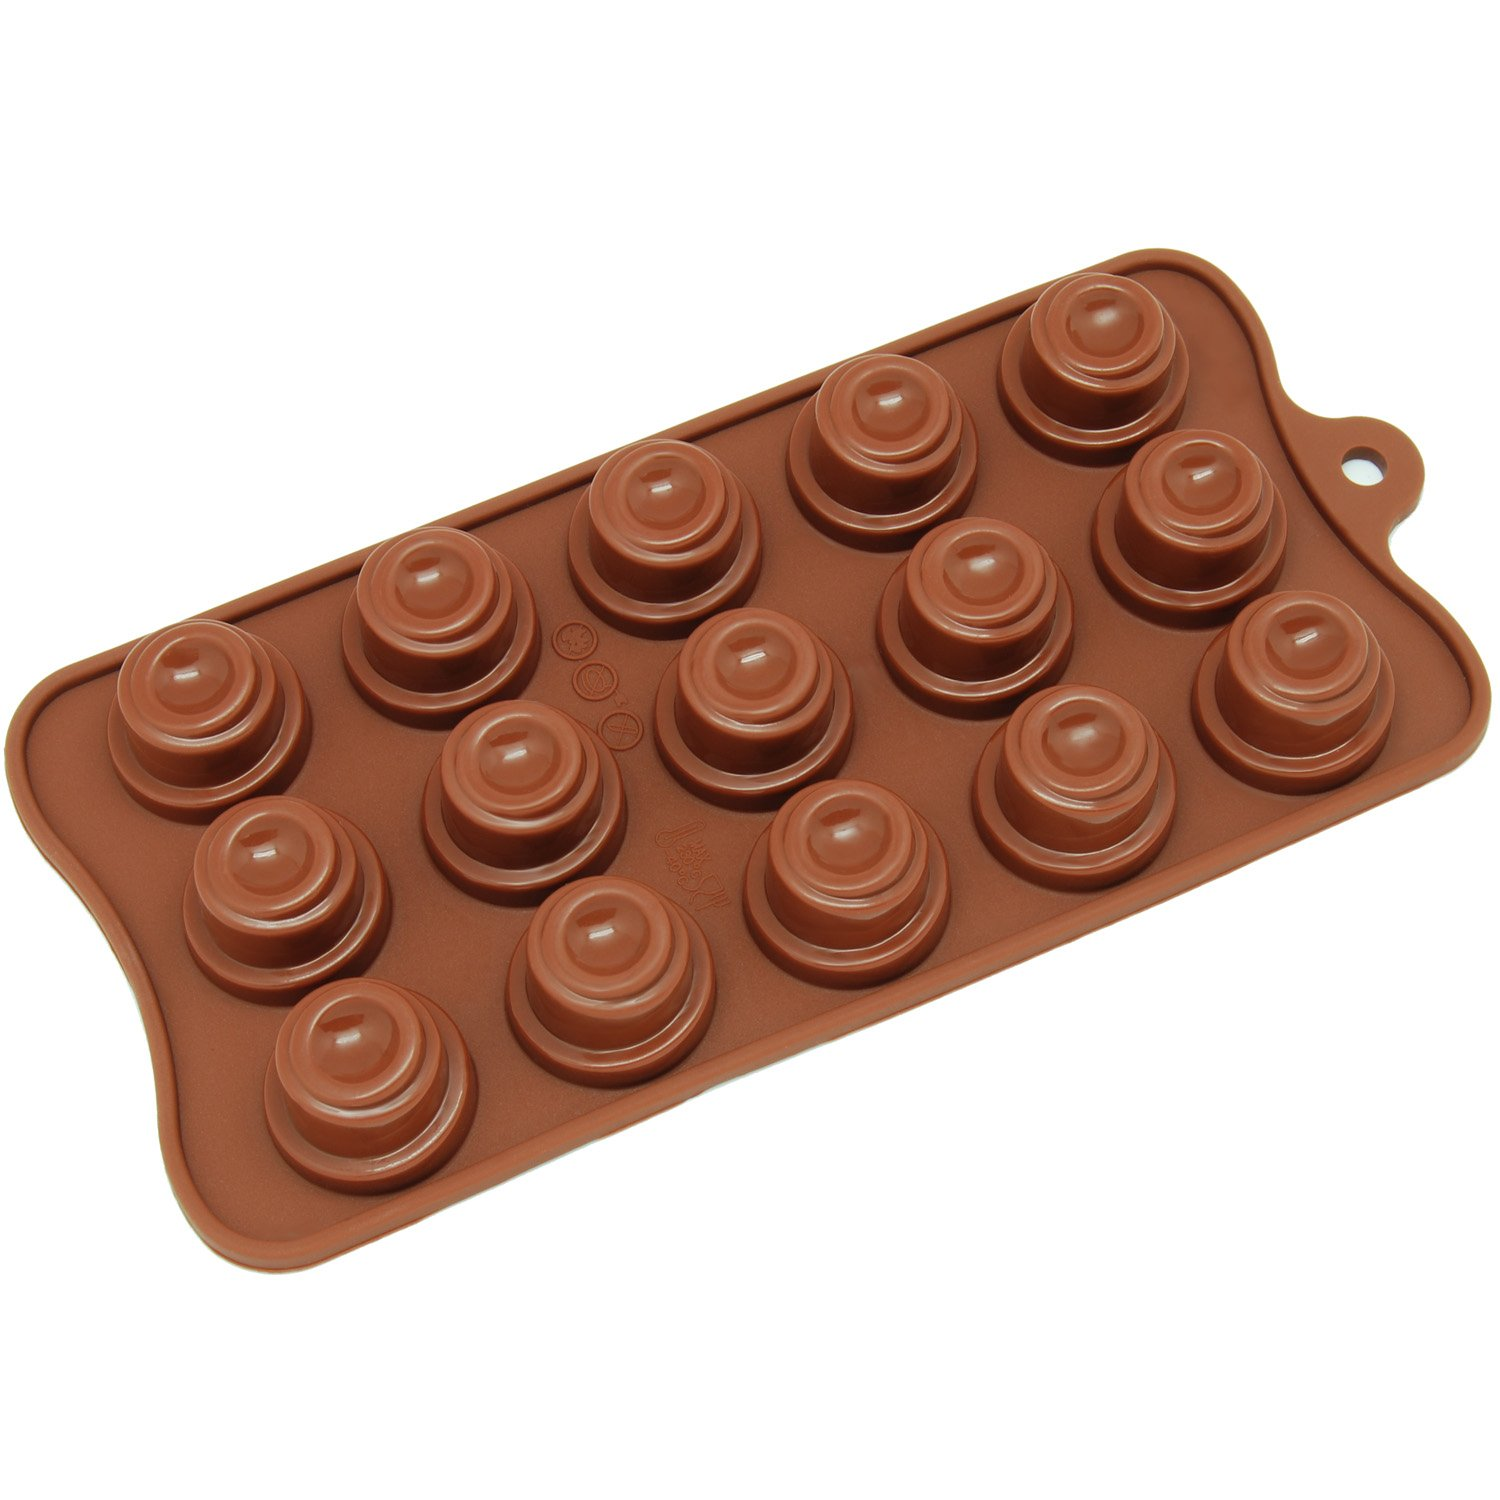 Freshware CB-609BR 15-Cavity Silicone Spiral Cone Chocolate, Candy and Gummy Mold